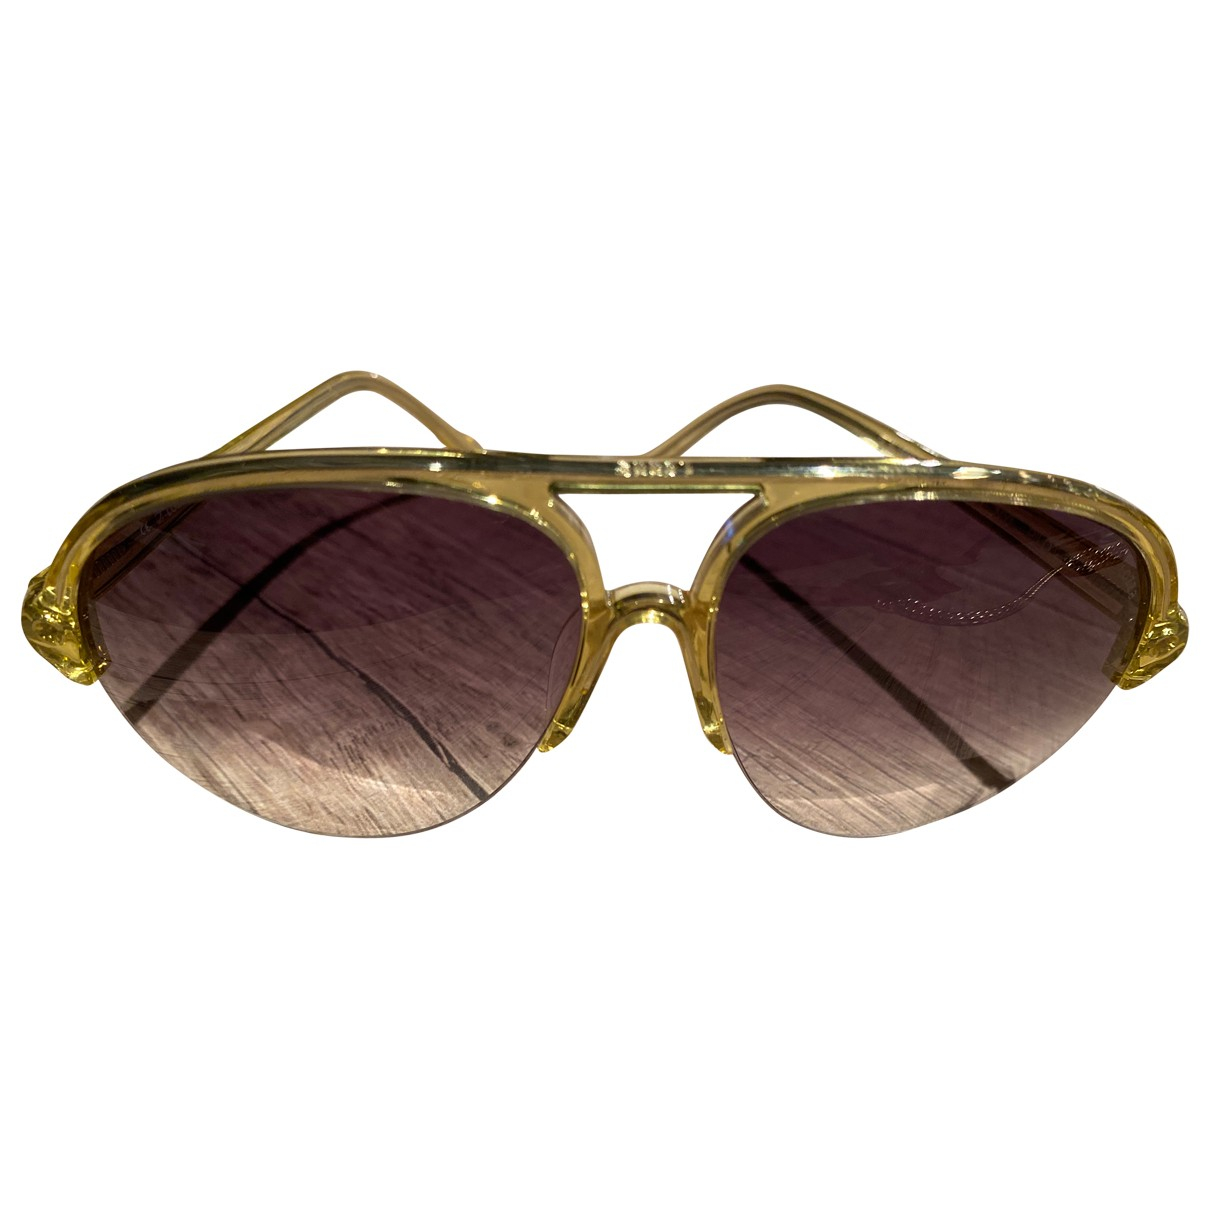 Lozza N Yellow Sunglasses for Women N